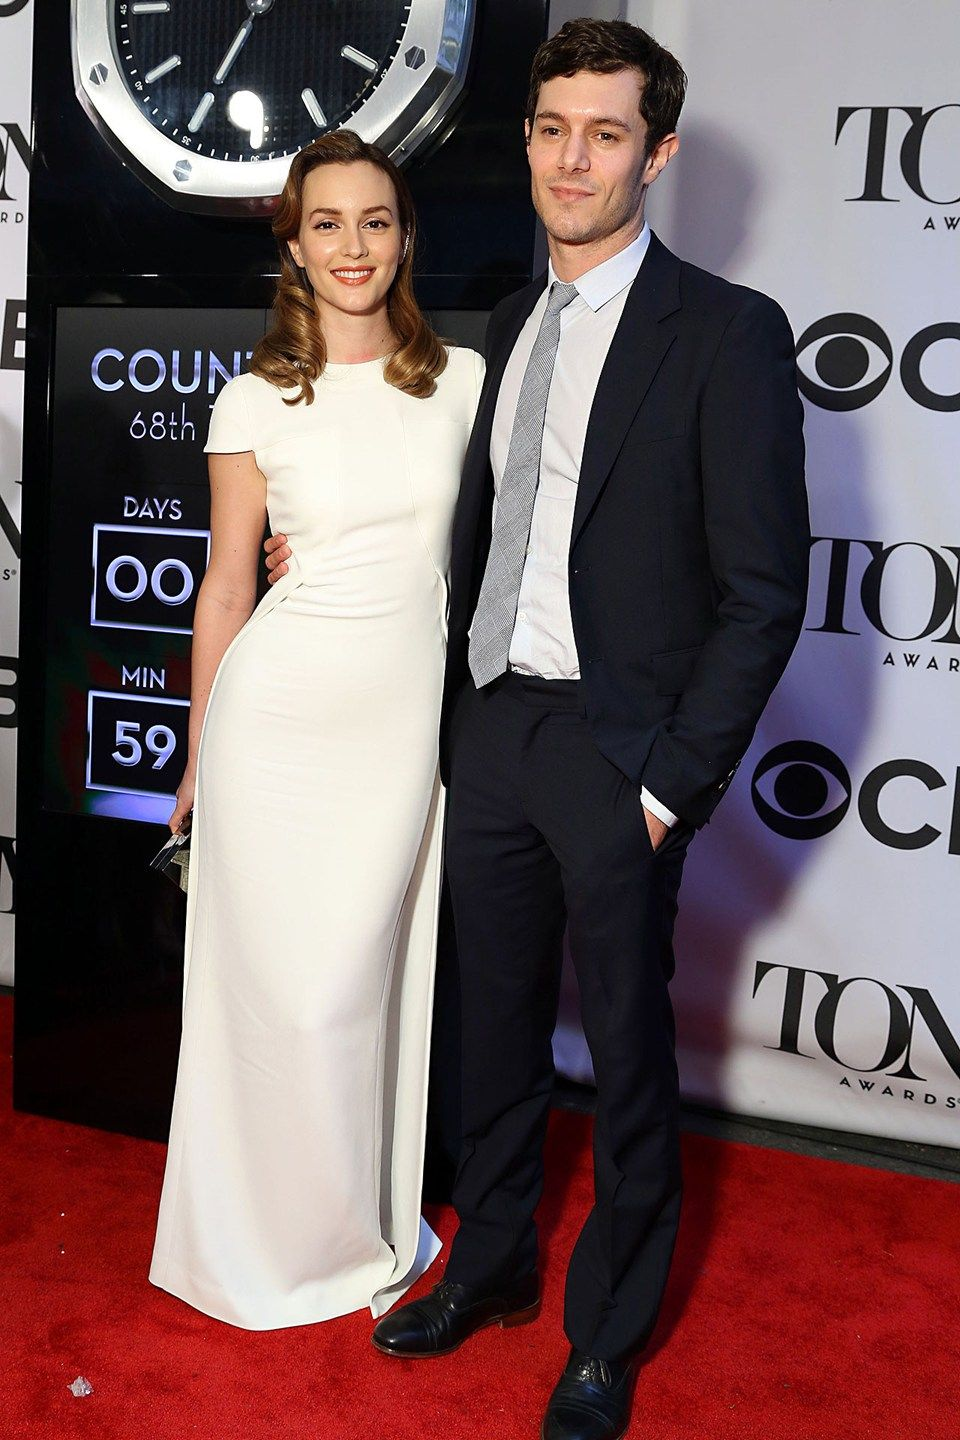 Leighton Adam S First Red Carpet Pics After Secret Wedding Leighton Meester Wedding Leighton Meester Celebrity Style